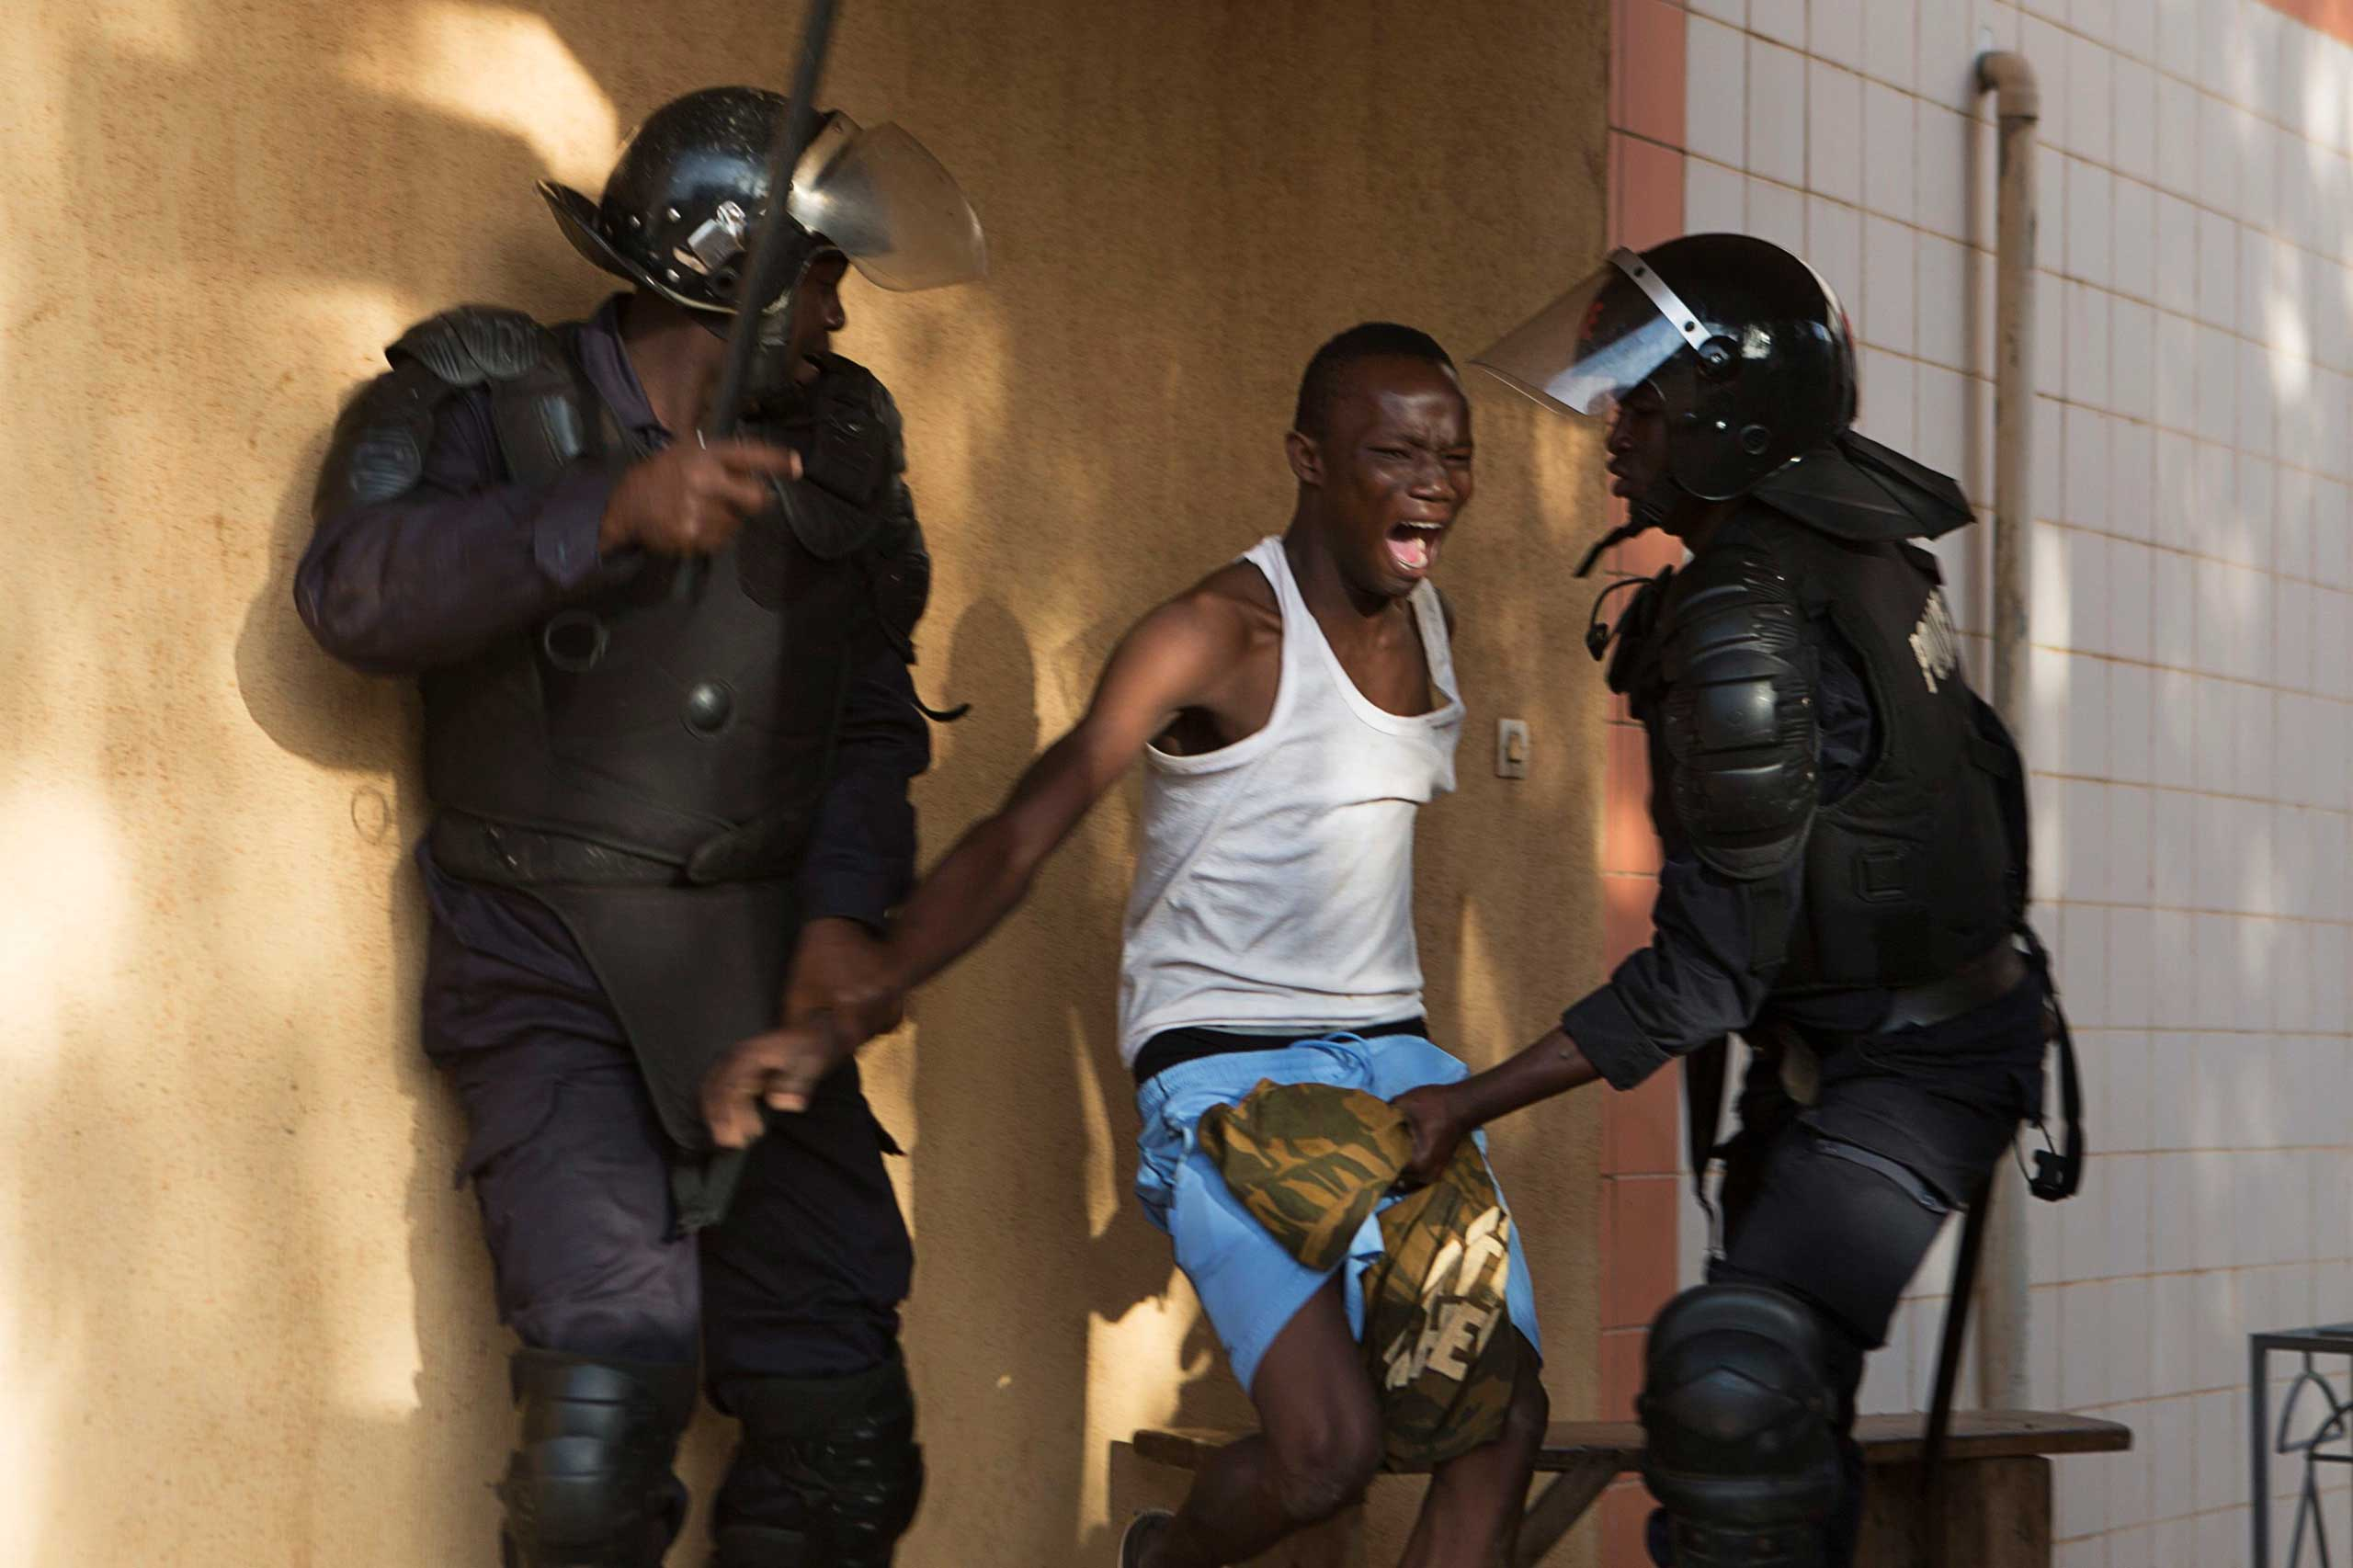 Oct. 30, 2014. Riot police arrest an anti-government protester in Ouagadougou, capital of Burkina Faso.  Thousands of protesters marched on Burkina Faso's presidential palace after burning the parliament building and ransacking state television offices on Thursday, forcing President Blaise Compaore to scrap a plan to extend his 27-year rule.